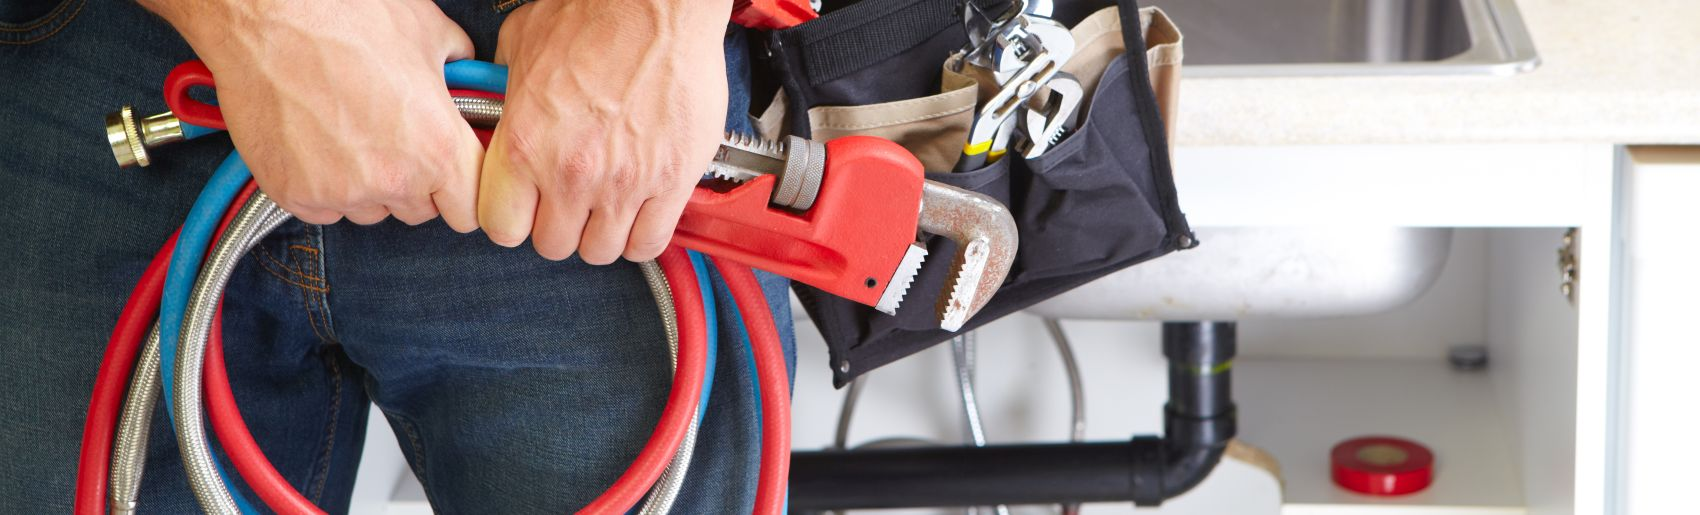 plumbing contractor with tools